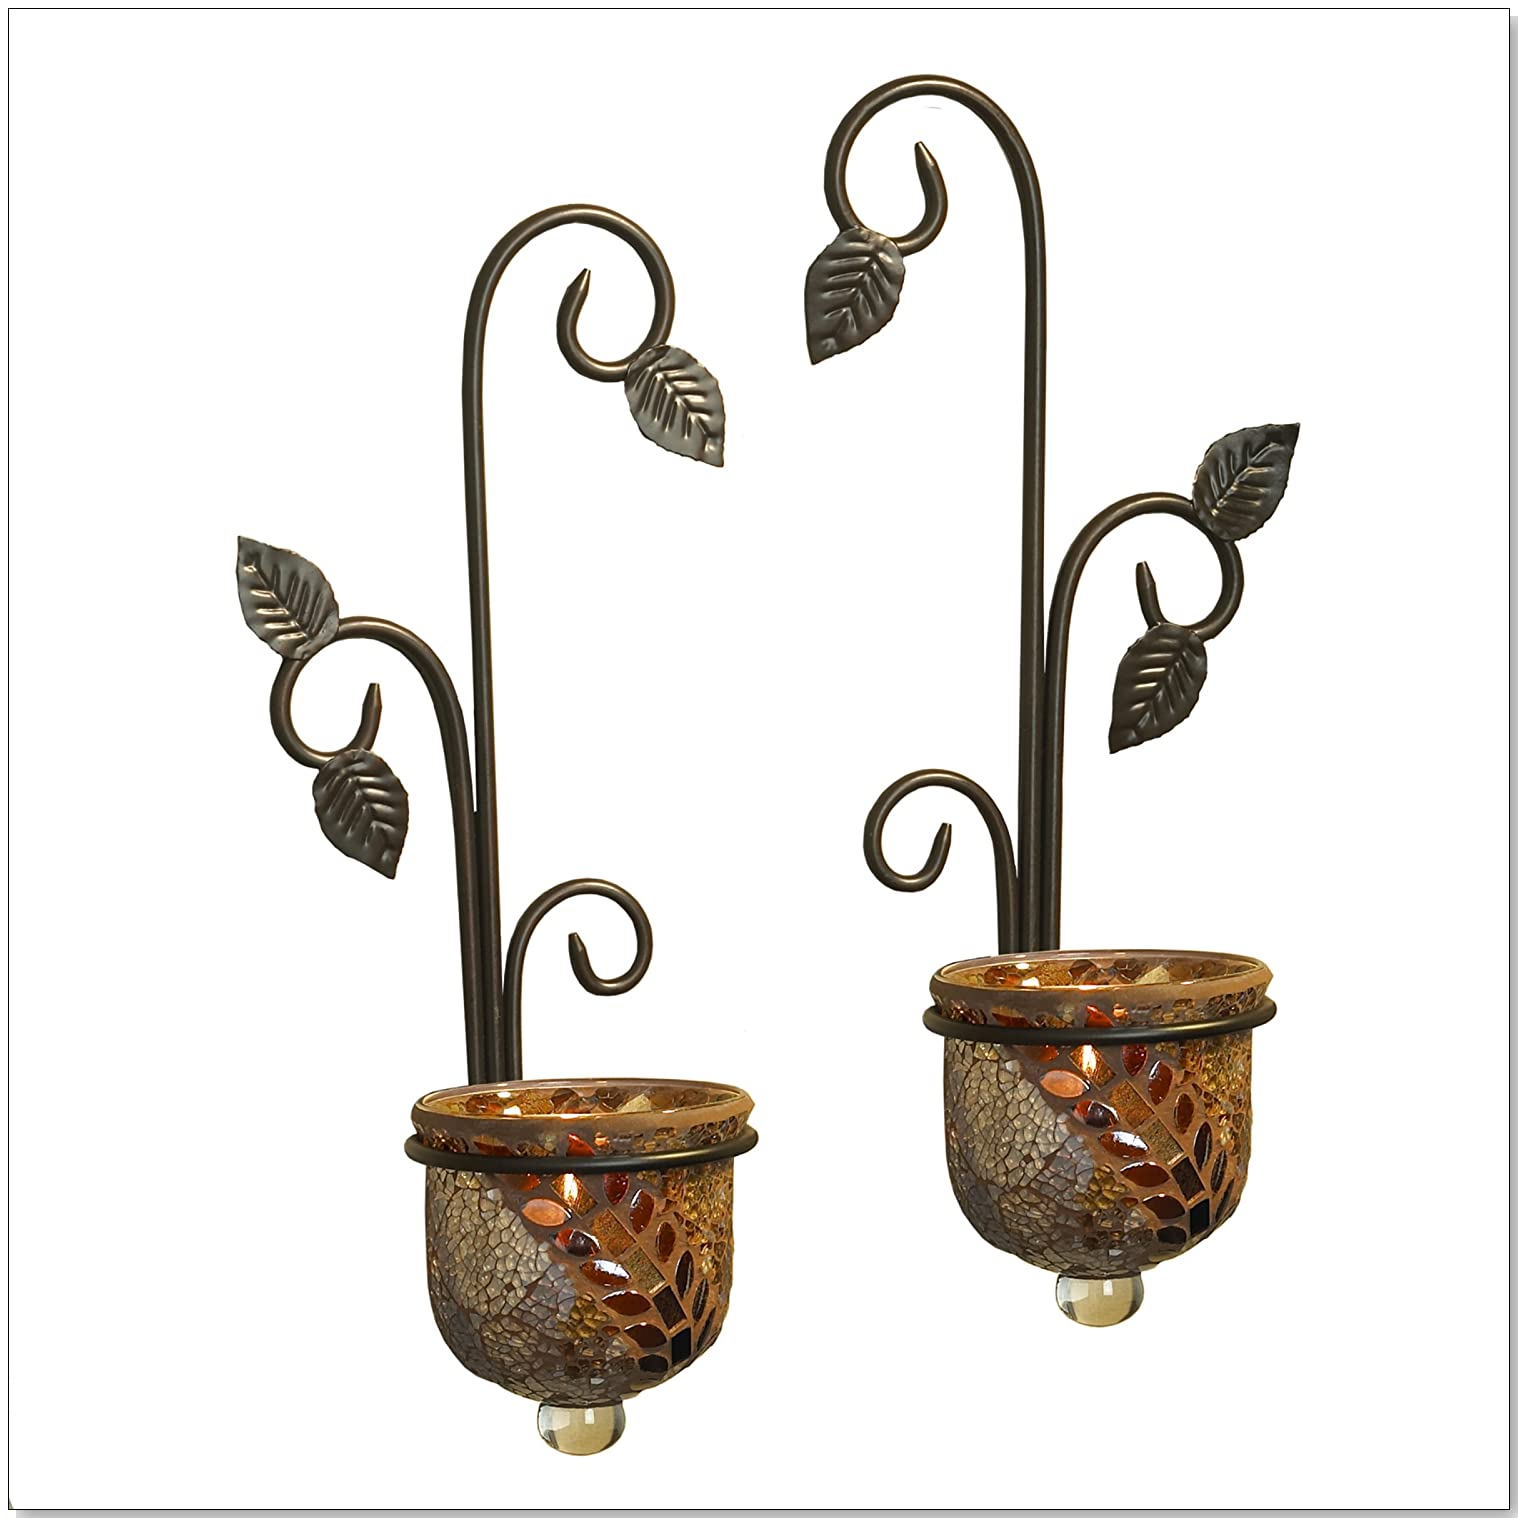 Wall Sconces Candles Holder : Wall Sconce Candle Holder - The Shoppers Guide